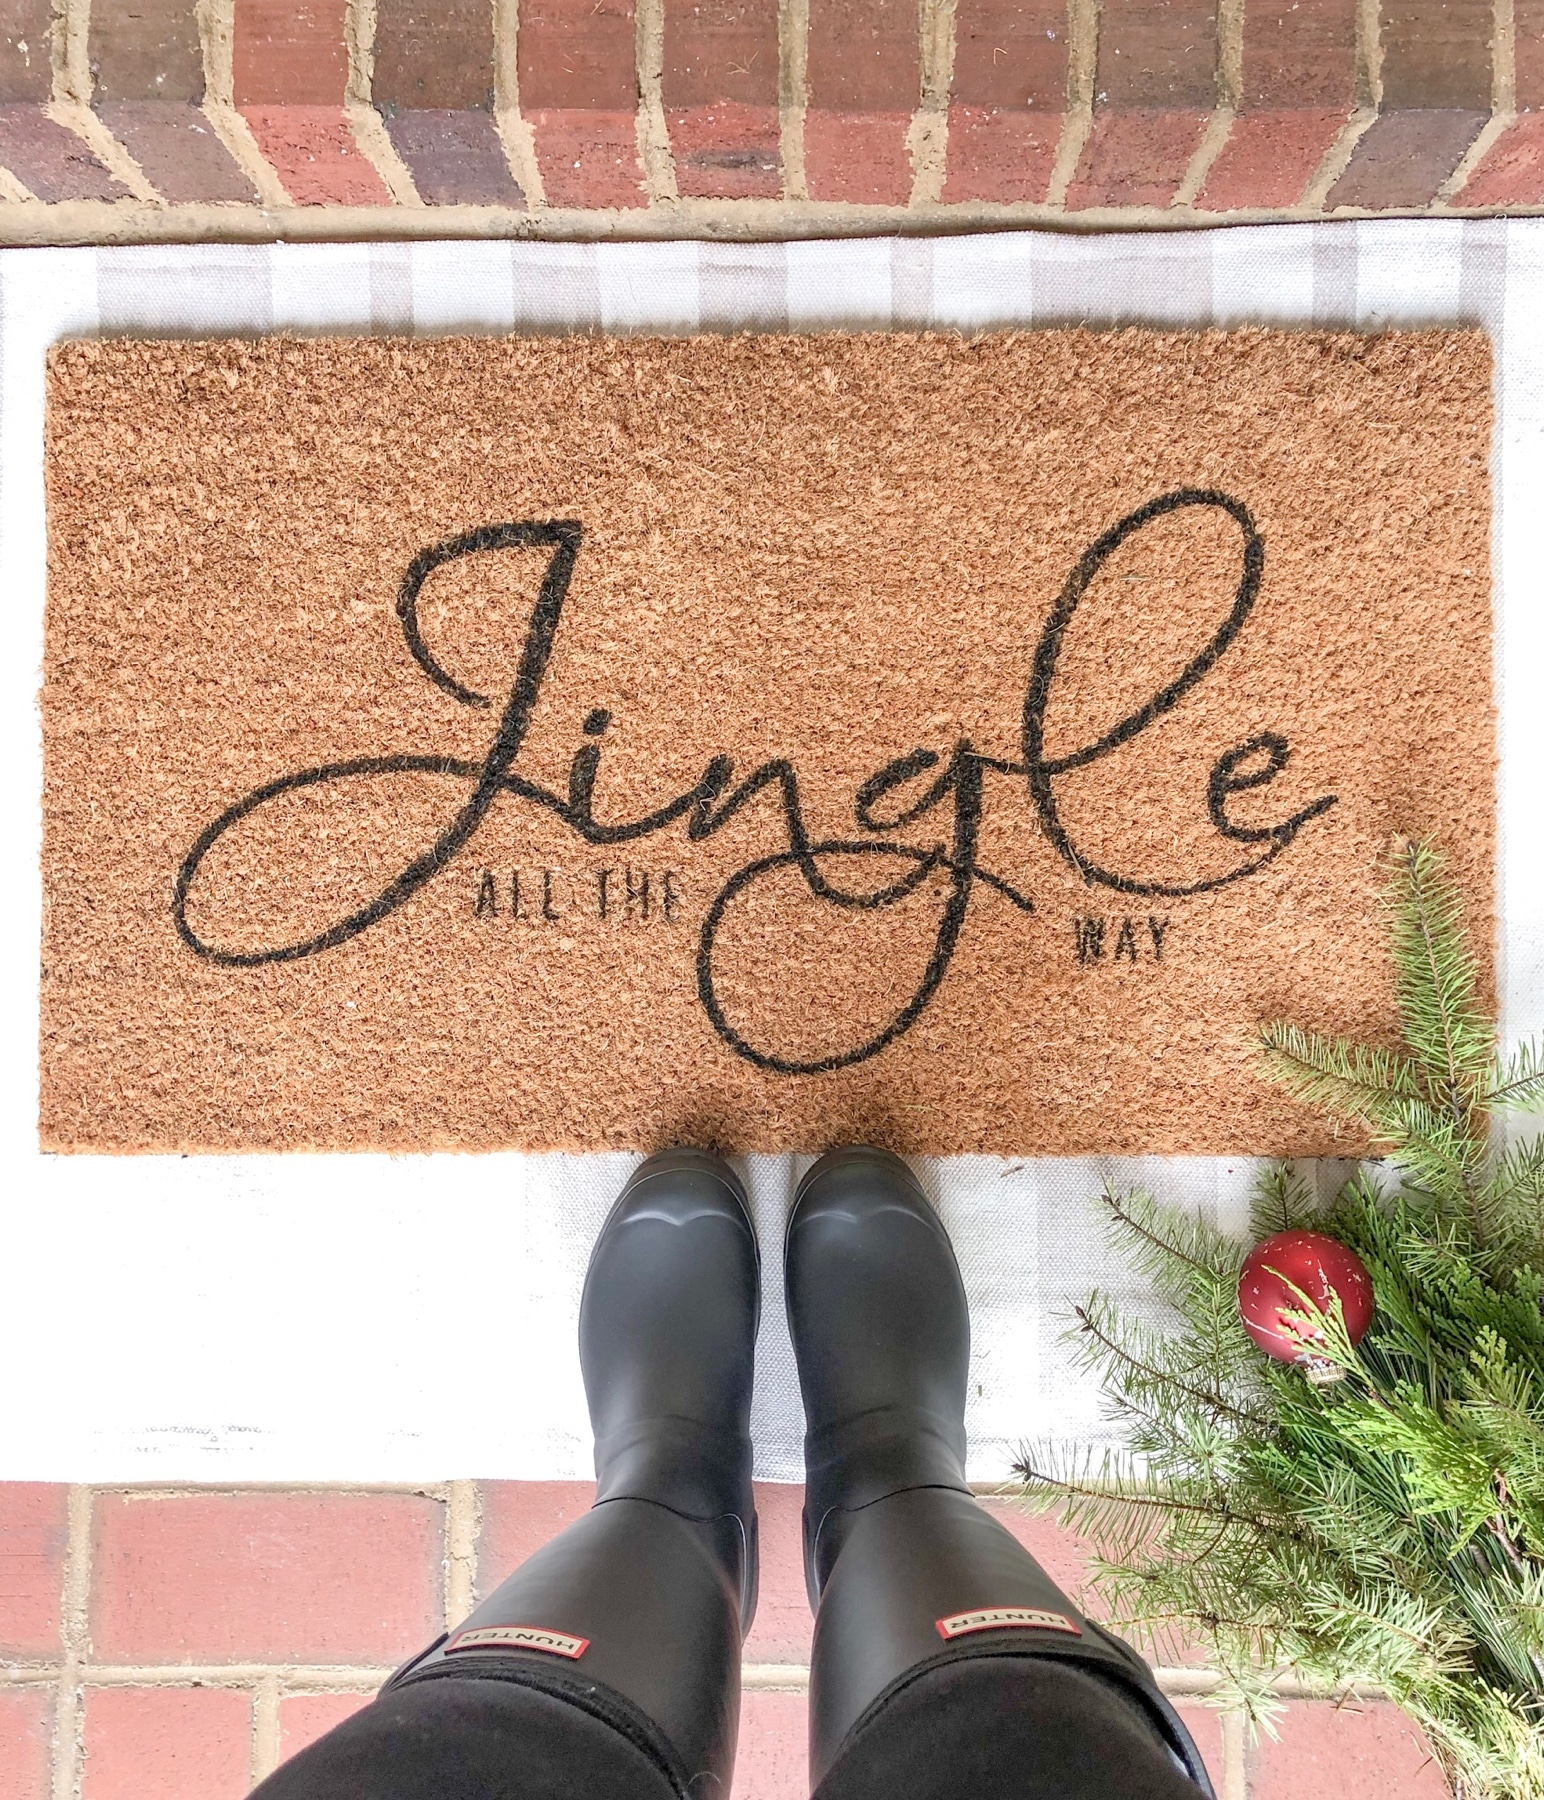 Design your own doormat